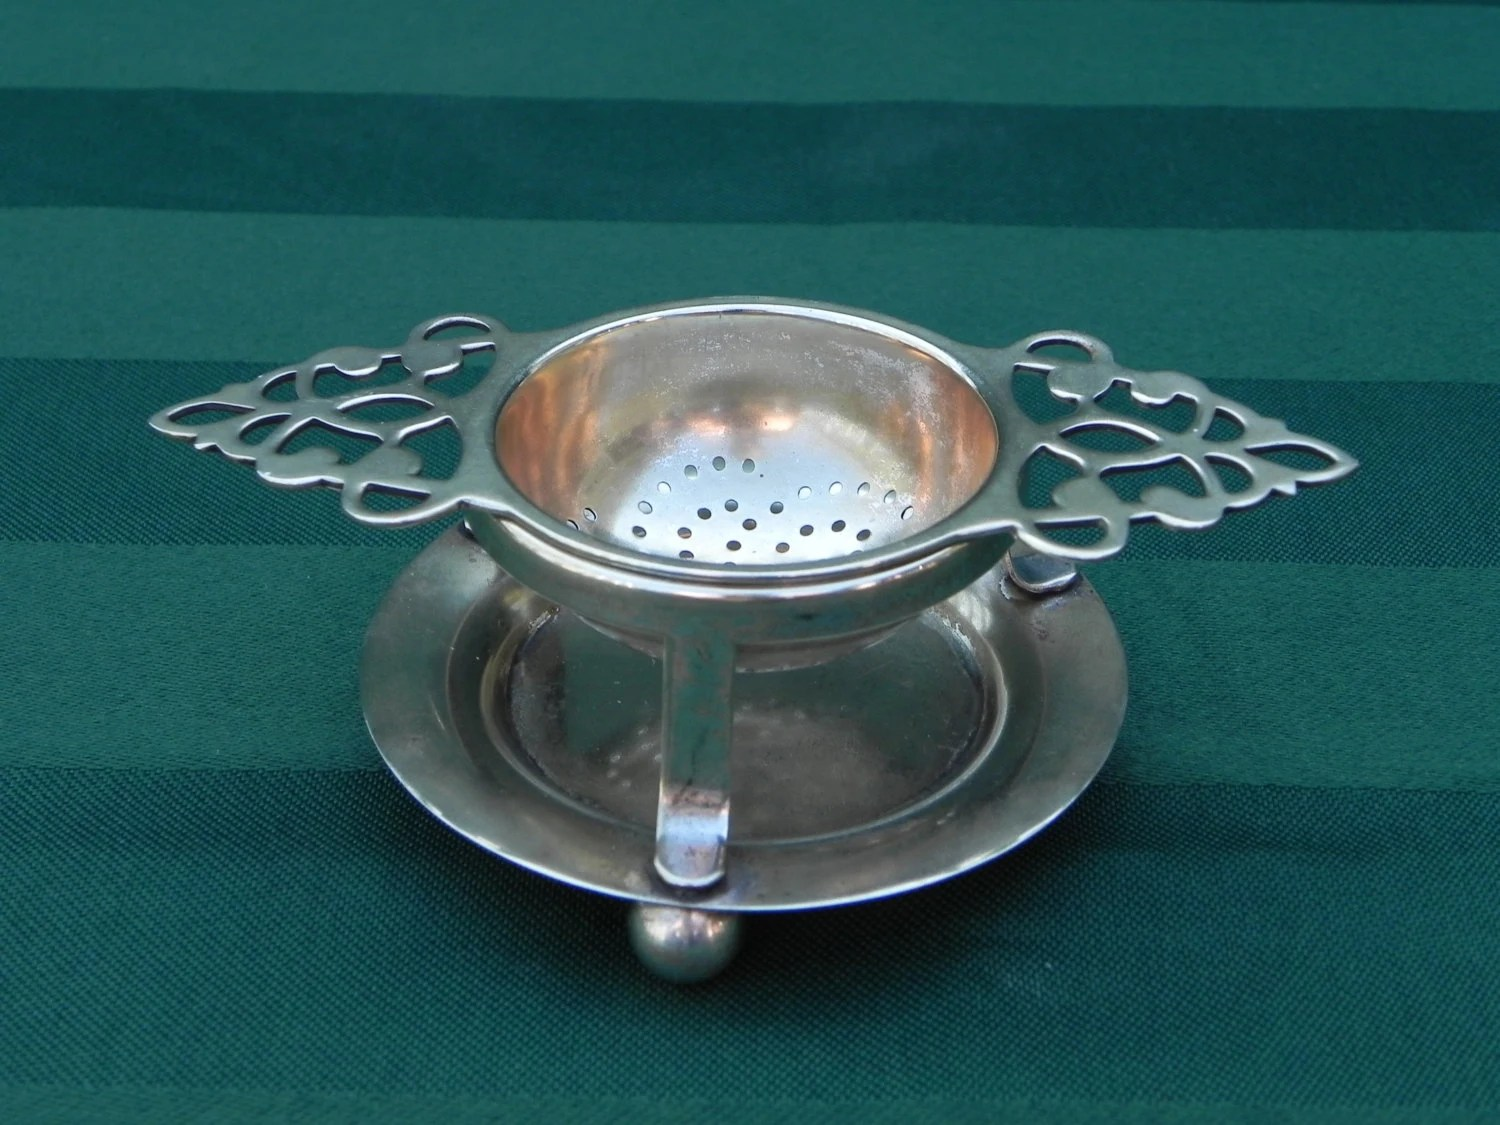 Vintage Tea Strainer And Stand Complete Set Made In